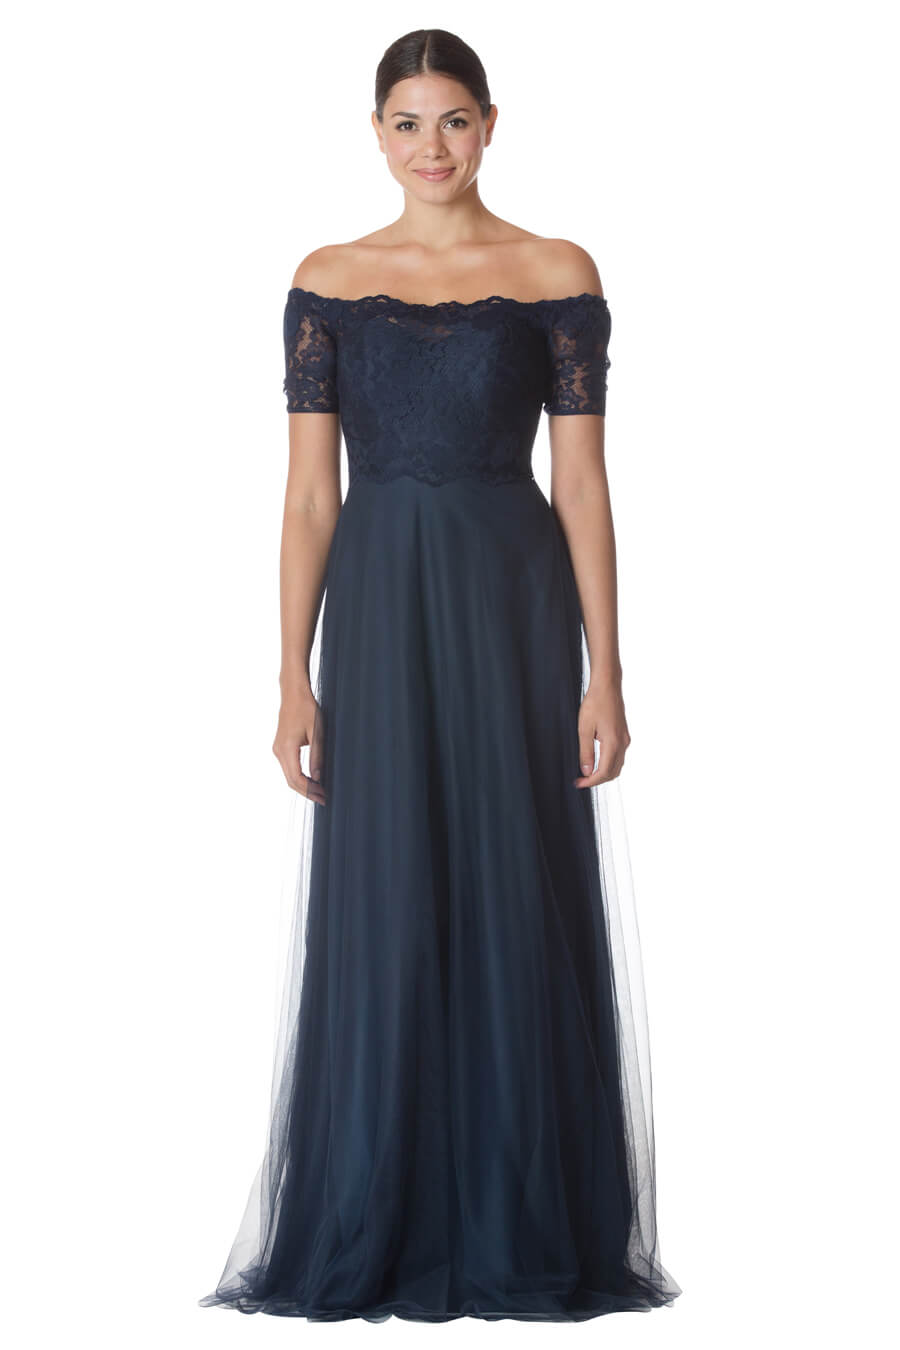 c1adf08d38ab Off-the-shoulder lace bodice with sheer short sleeves. A-line English net  skirt.